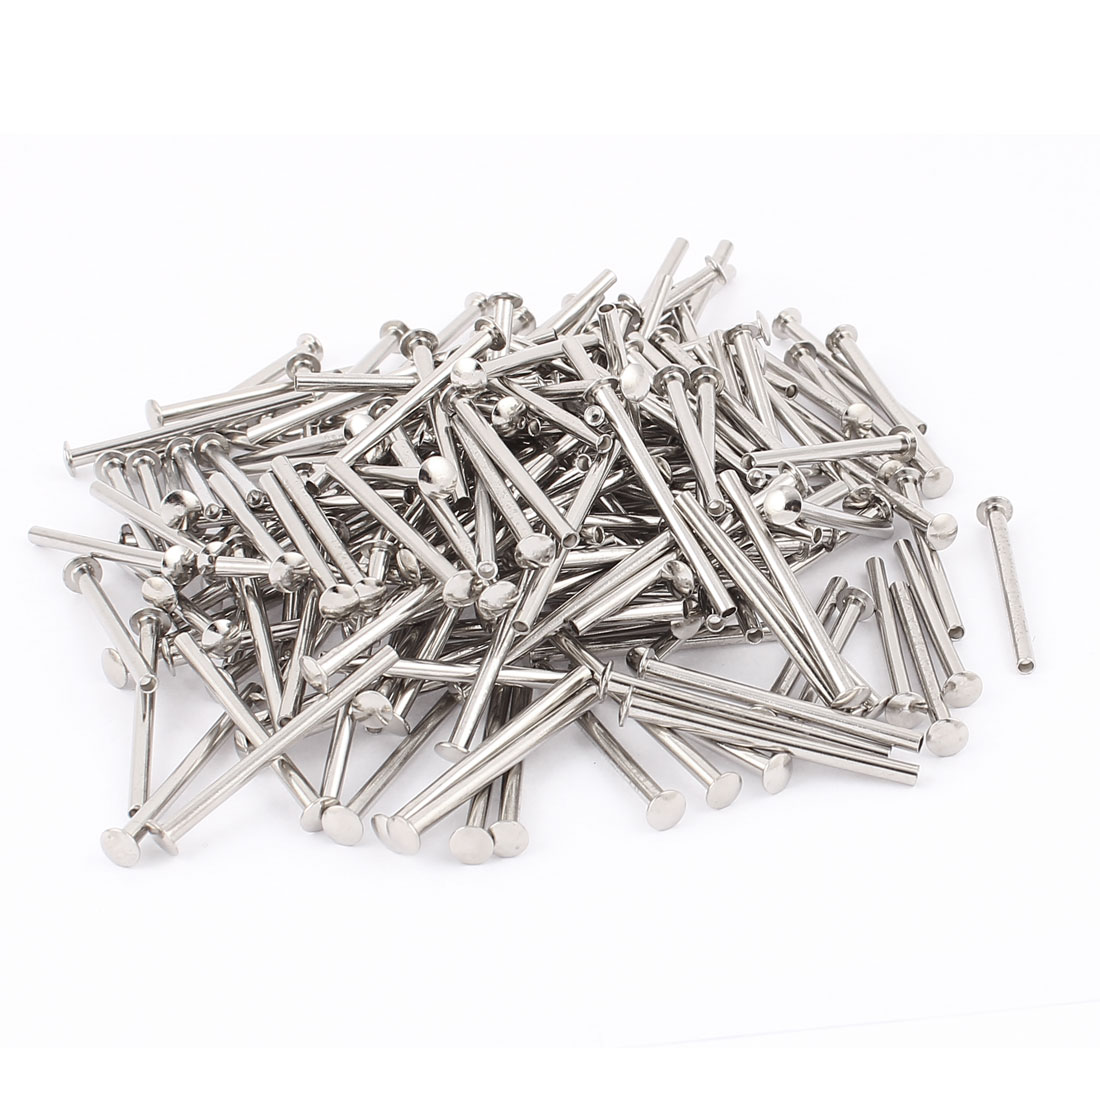 200 Pcs M3 x 40mm Nickel Plated Truss Head Semi-Tubular Rivets